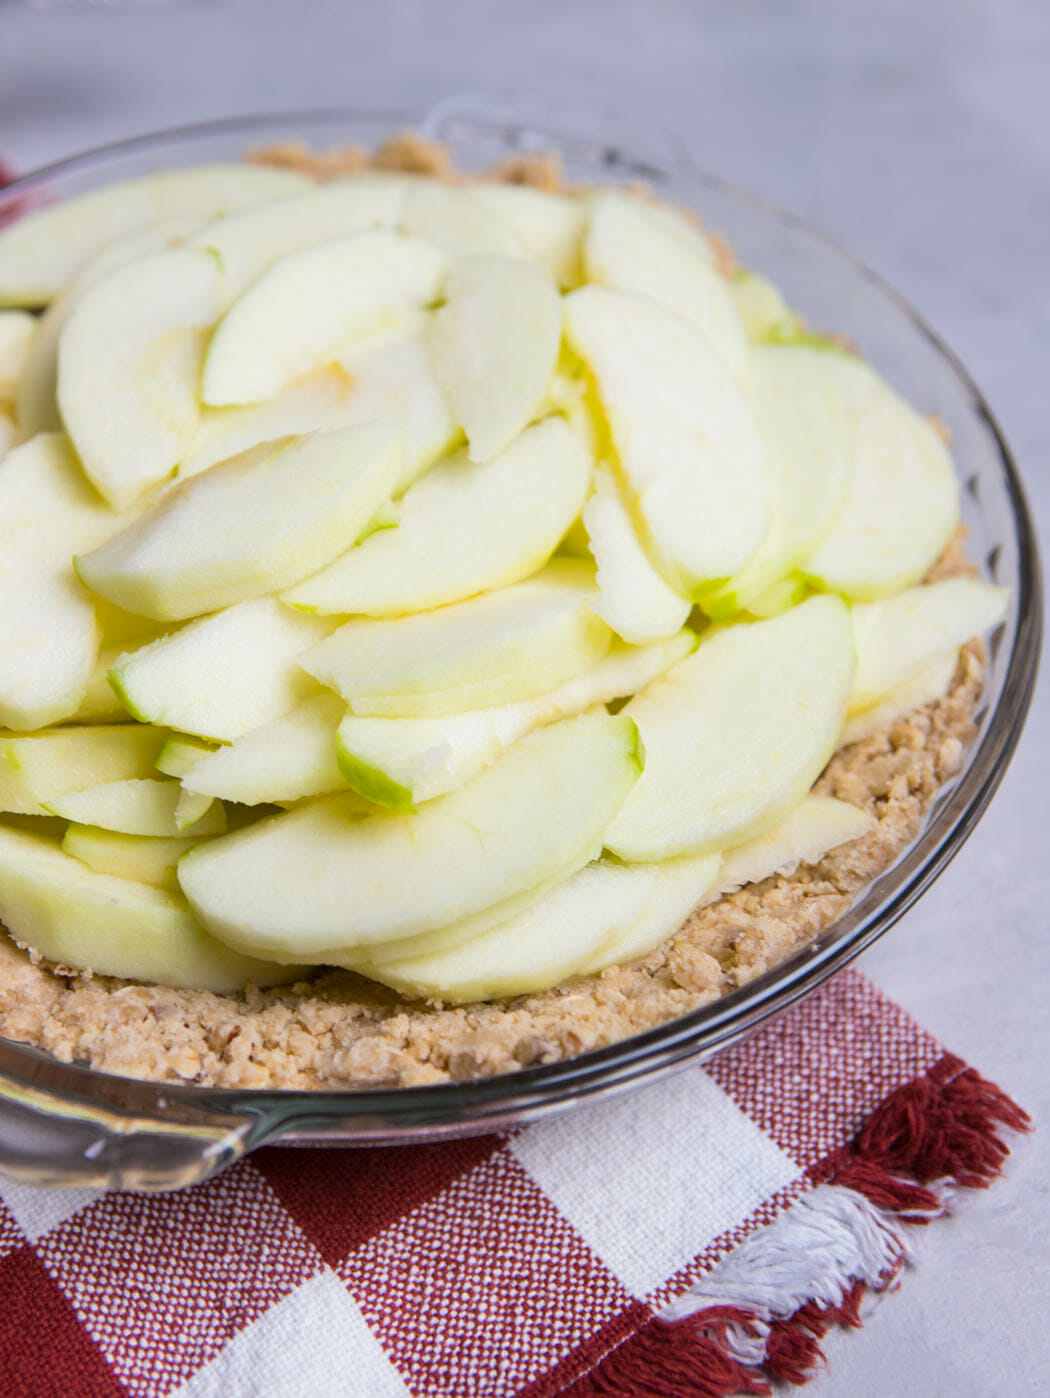 apples in Crumb Topped Apple Pie from Our Best Bites